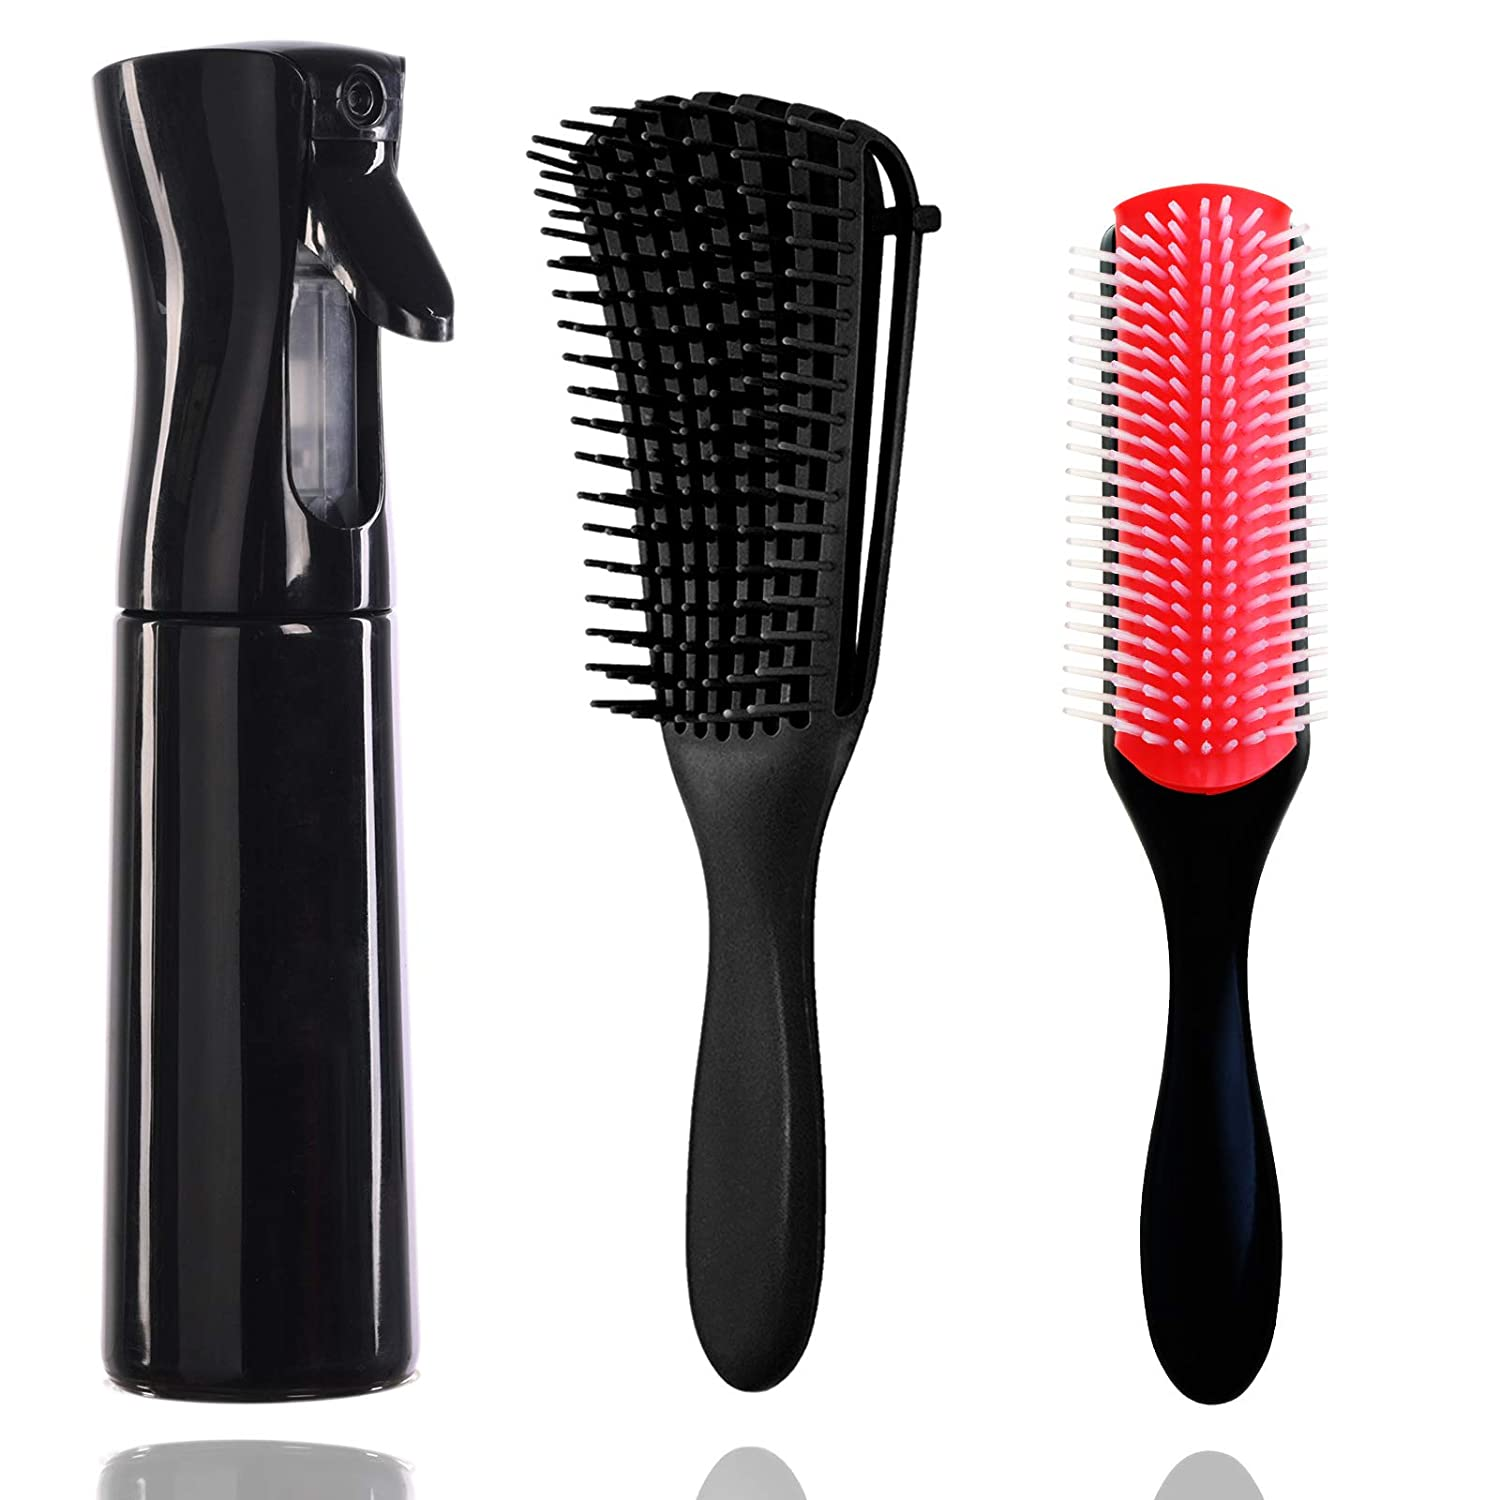 Hair Continuous Spray Bottle Set, 9-Row Cushion Nylon Bristle Brush +Detangling Brush Water Sprayer Brush Set Hair for Hairstyling, Cleaning, Plants & Misting, (300ML&10 Ounce, Black)